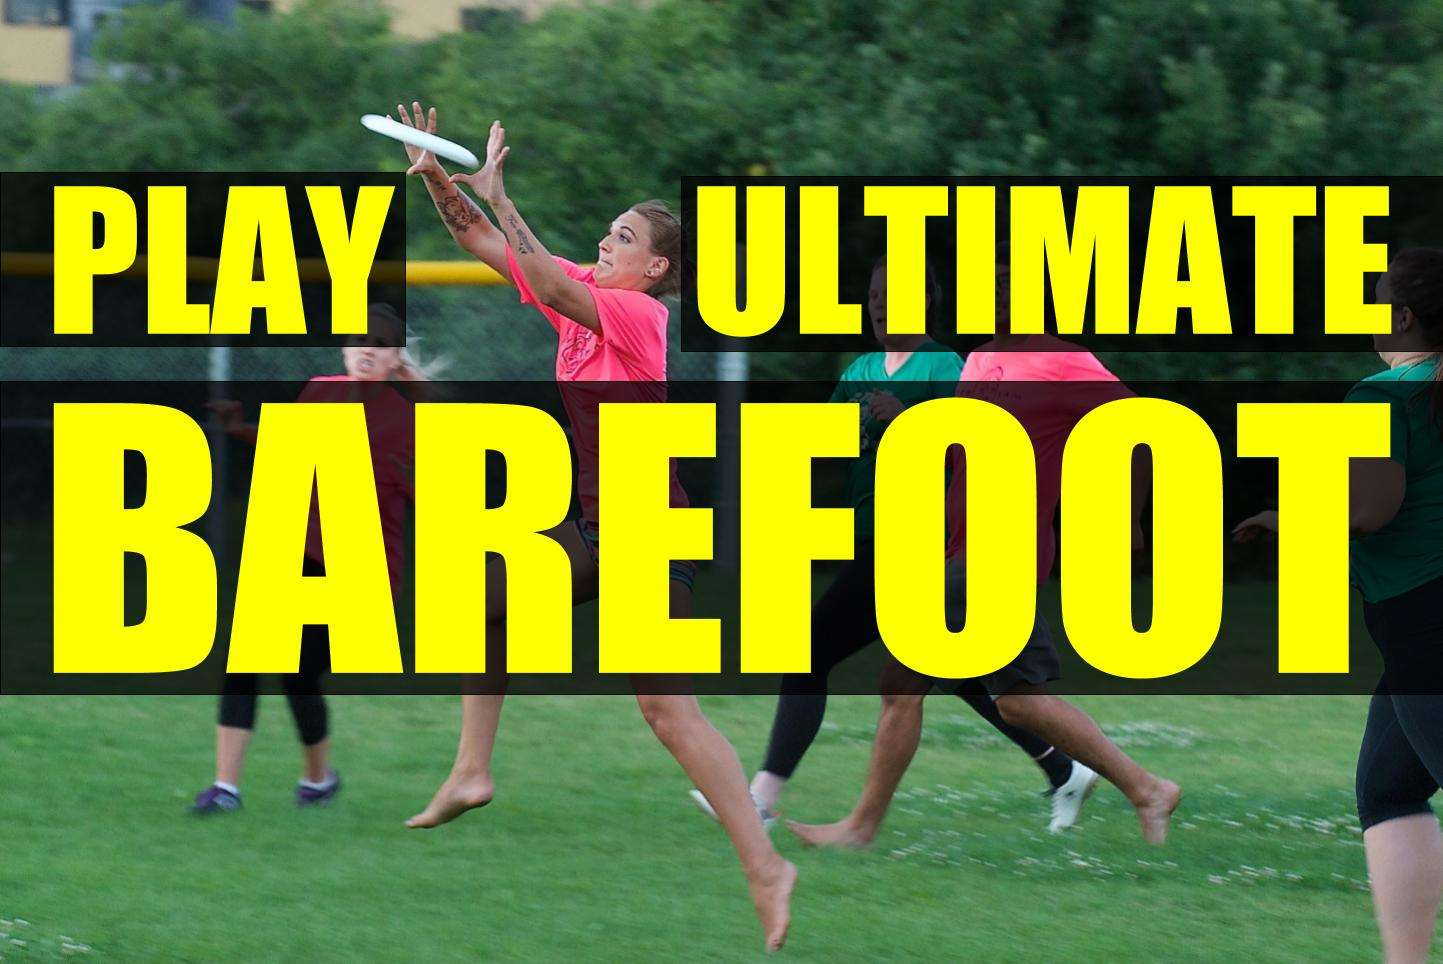 Play Ultimate Frisbee Barefoot – 11 Reasons To Give Up Cleats